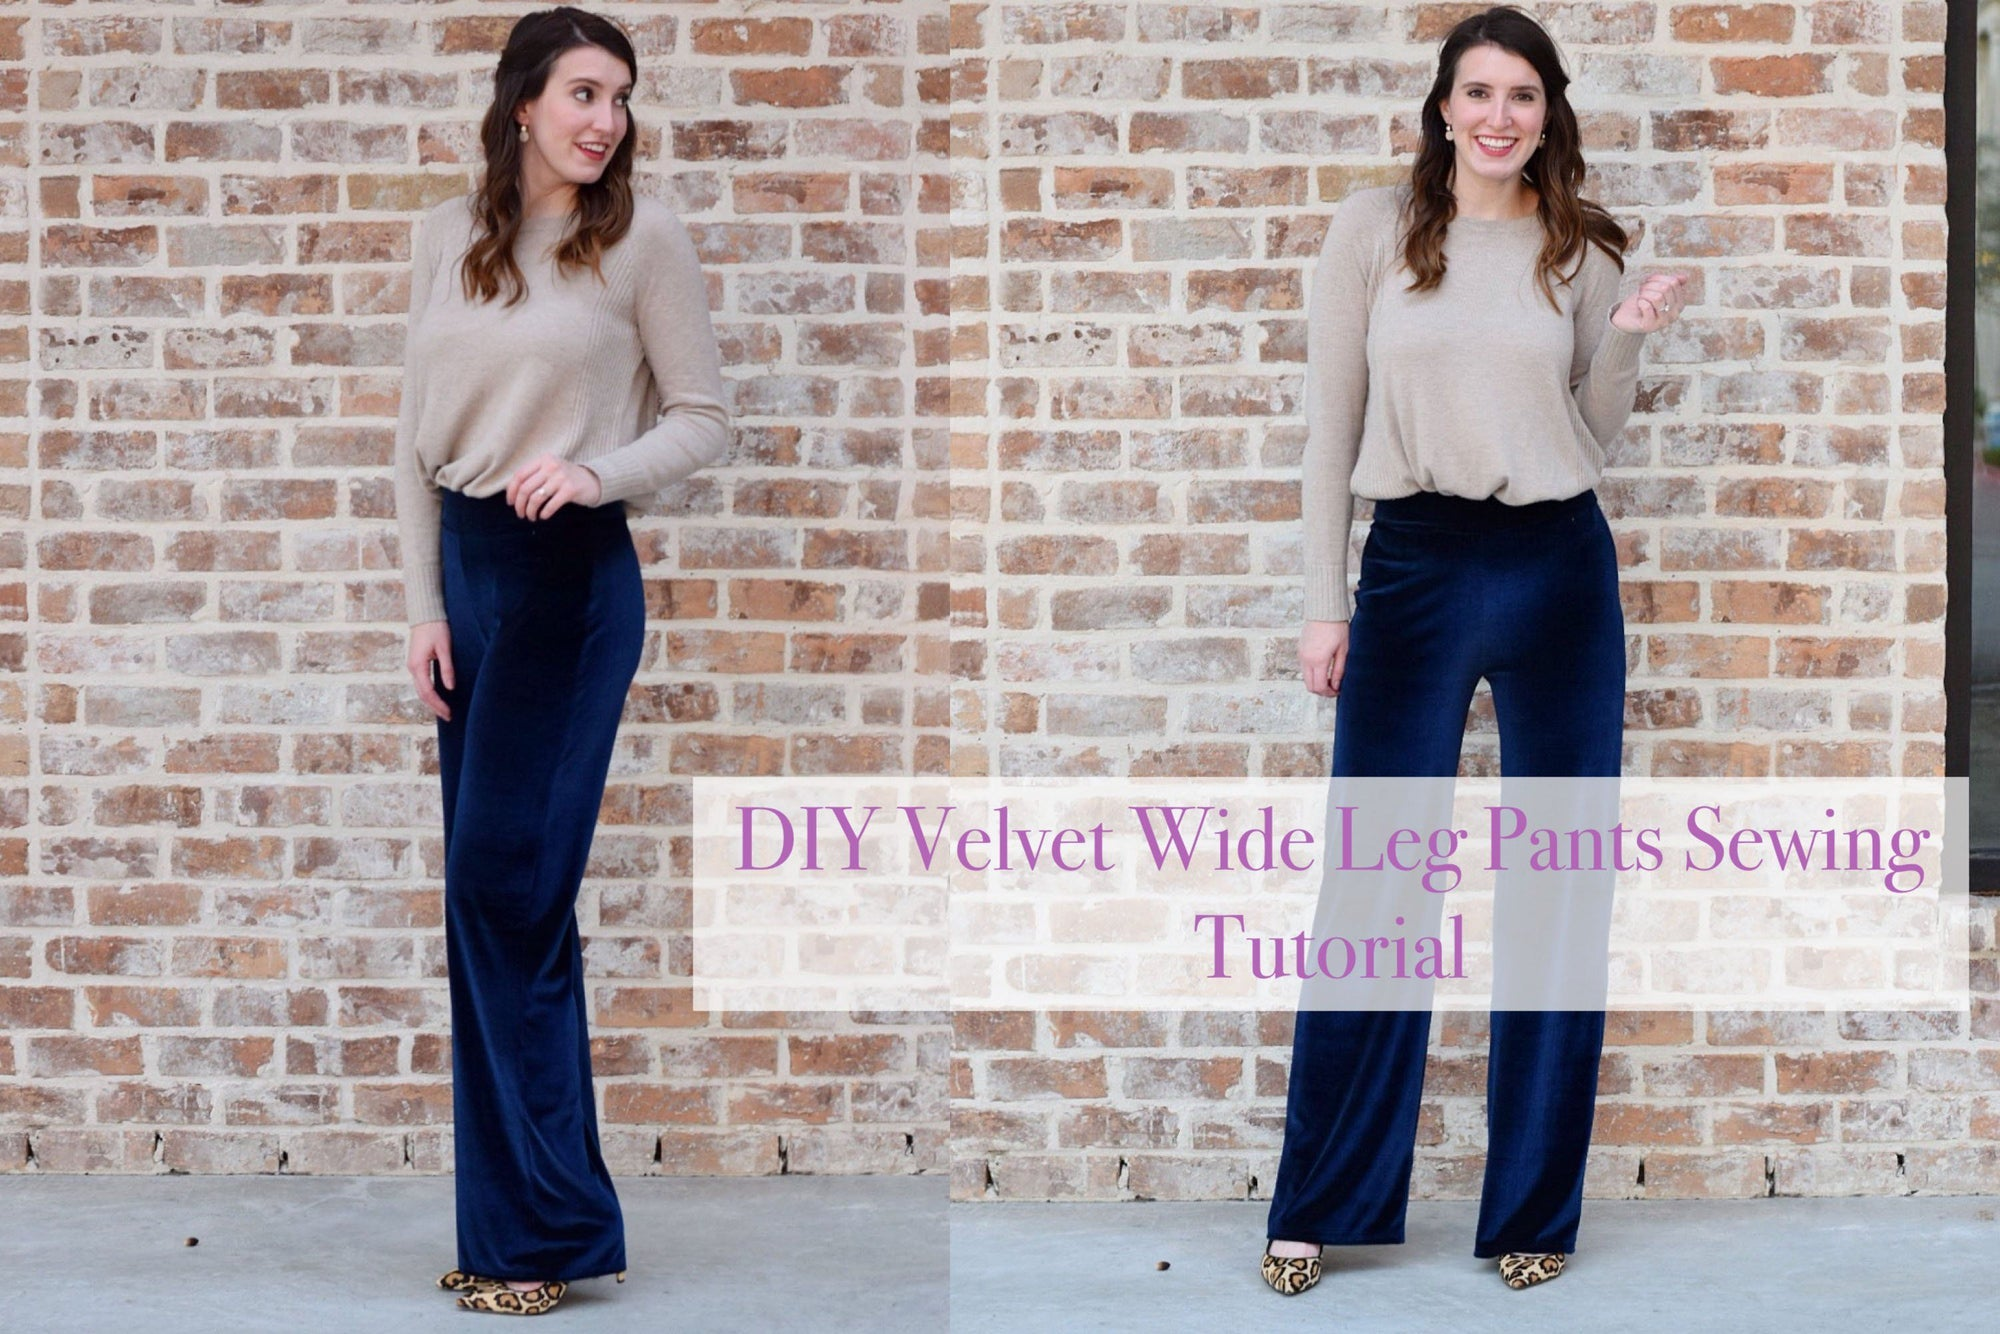 DIY Velvet Wide Leg Pants Sewing Tutorial